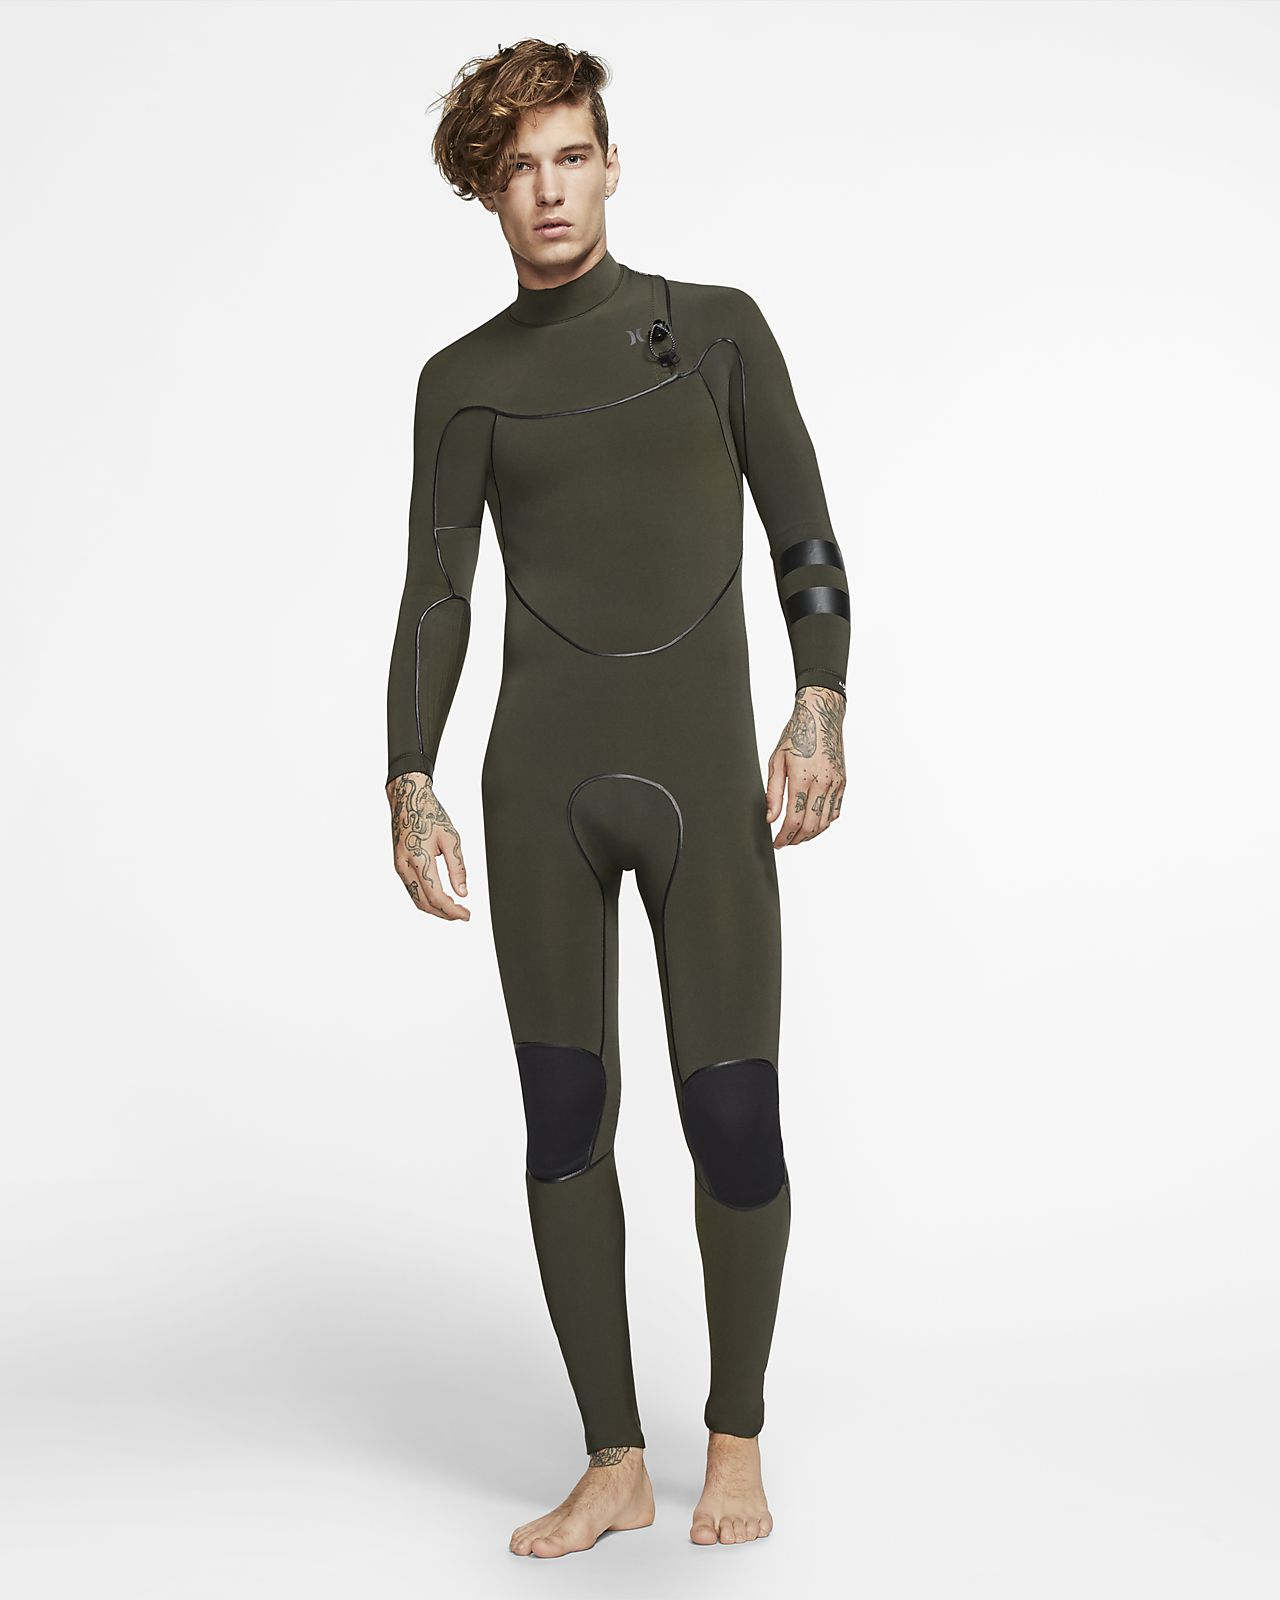 Hurley Advantage Max 3/2mm Fullsuit Men's Wetsuit